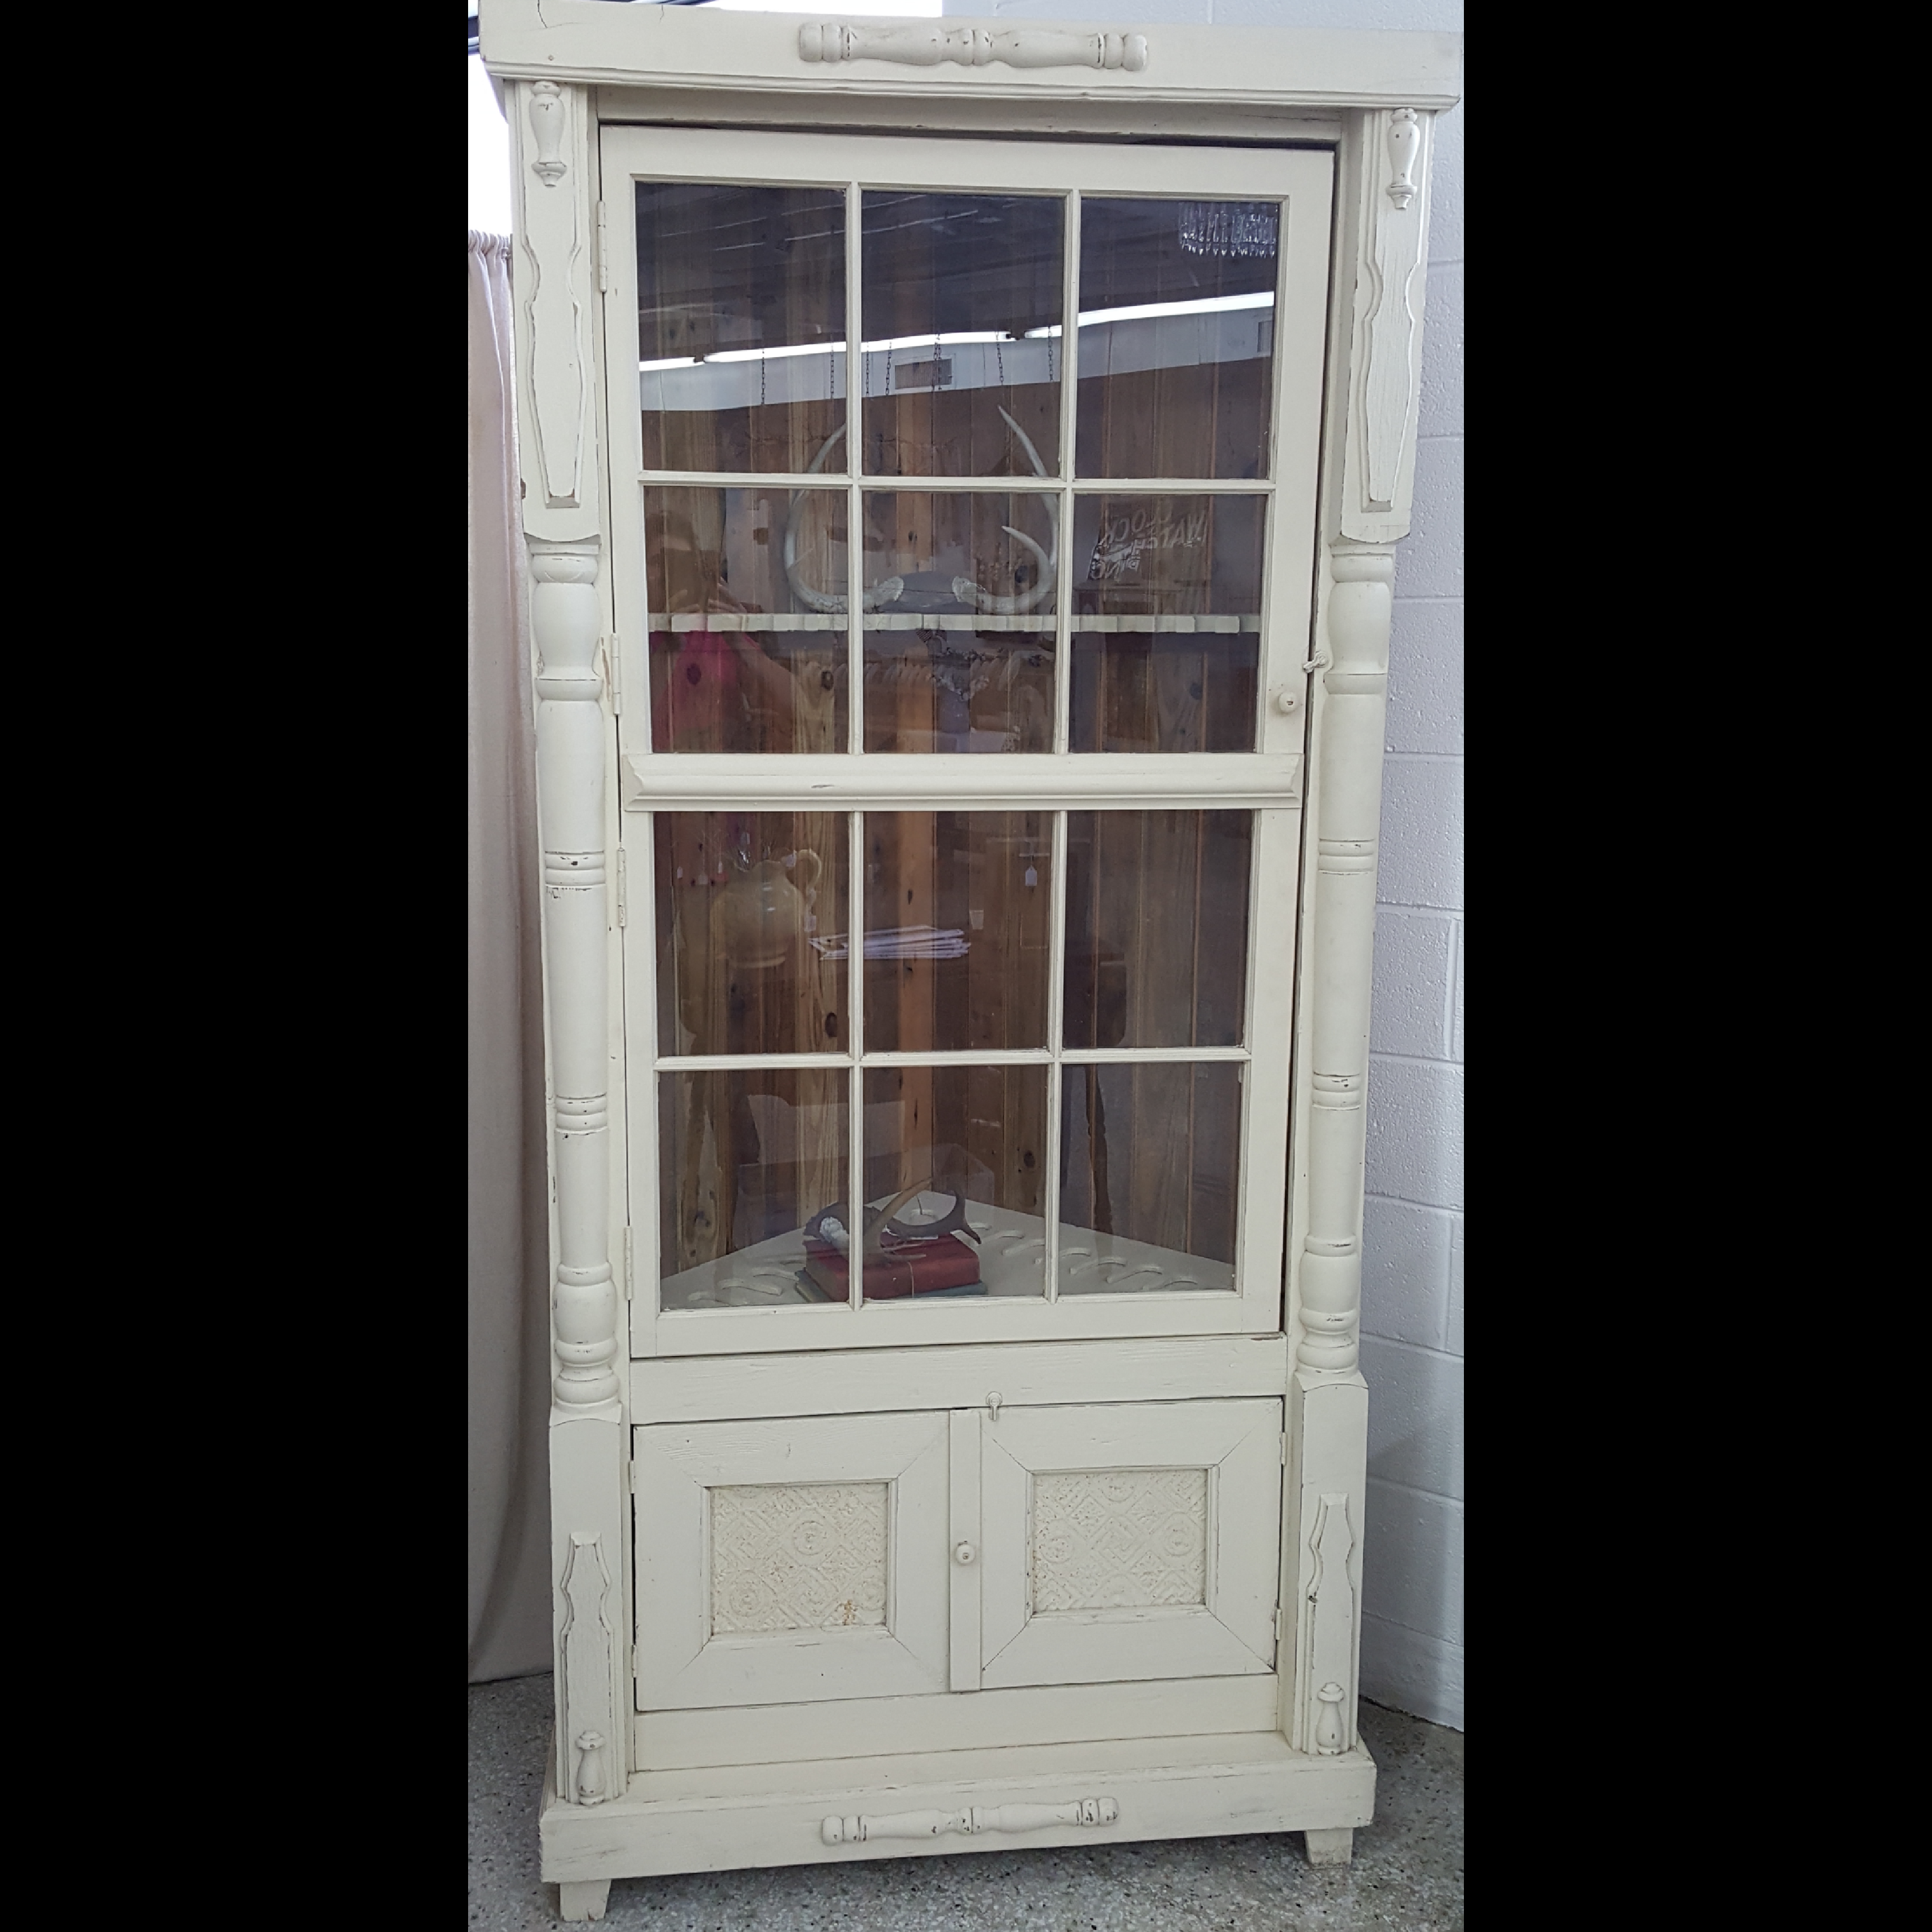 Farmhouse Gun Cabinet That Can Be Used As An Actual Or Covert It With Shelves To Use A China Lots Of Character On This Piece